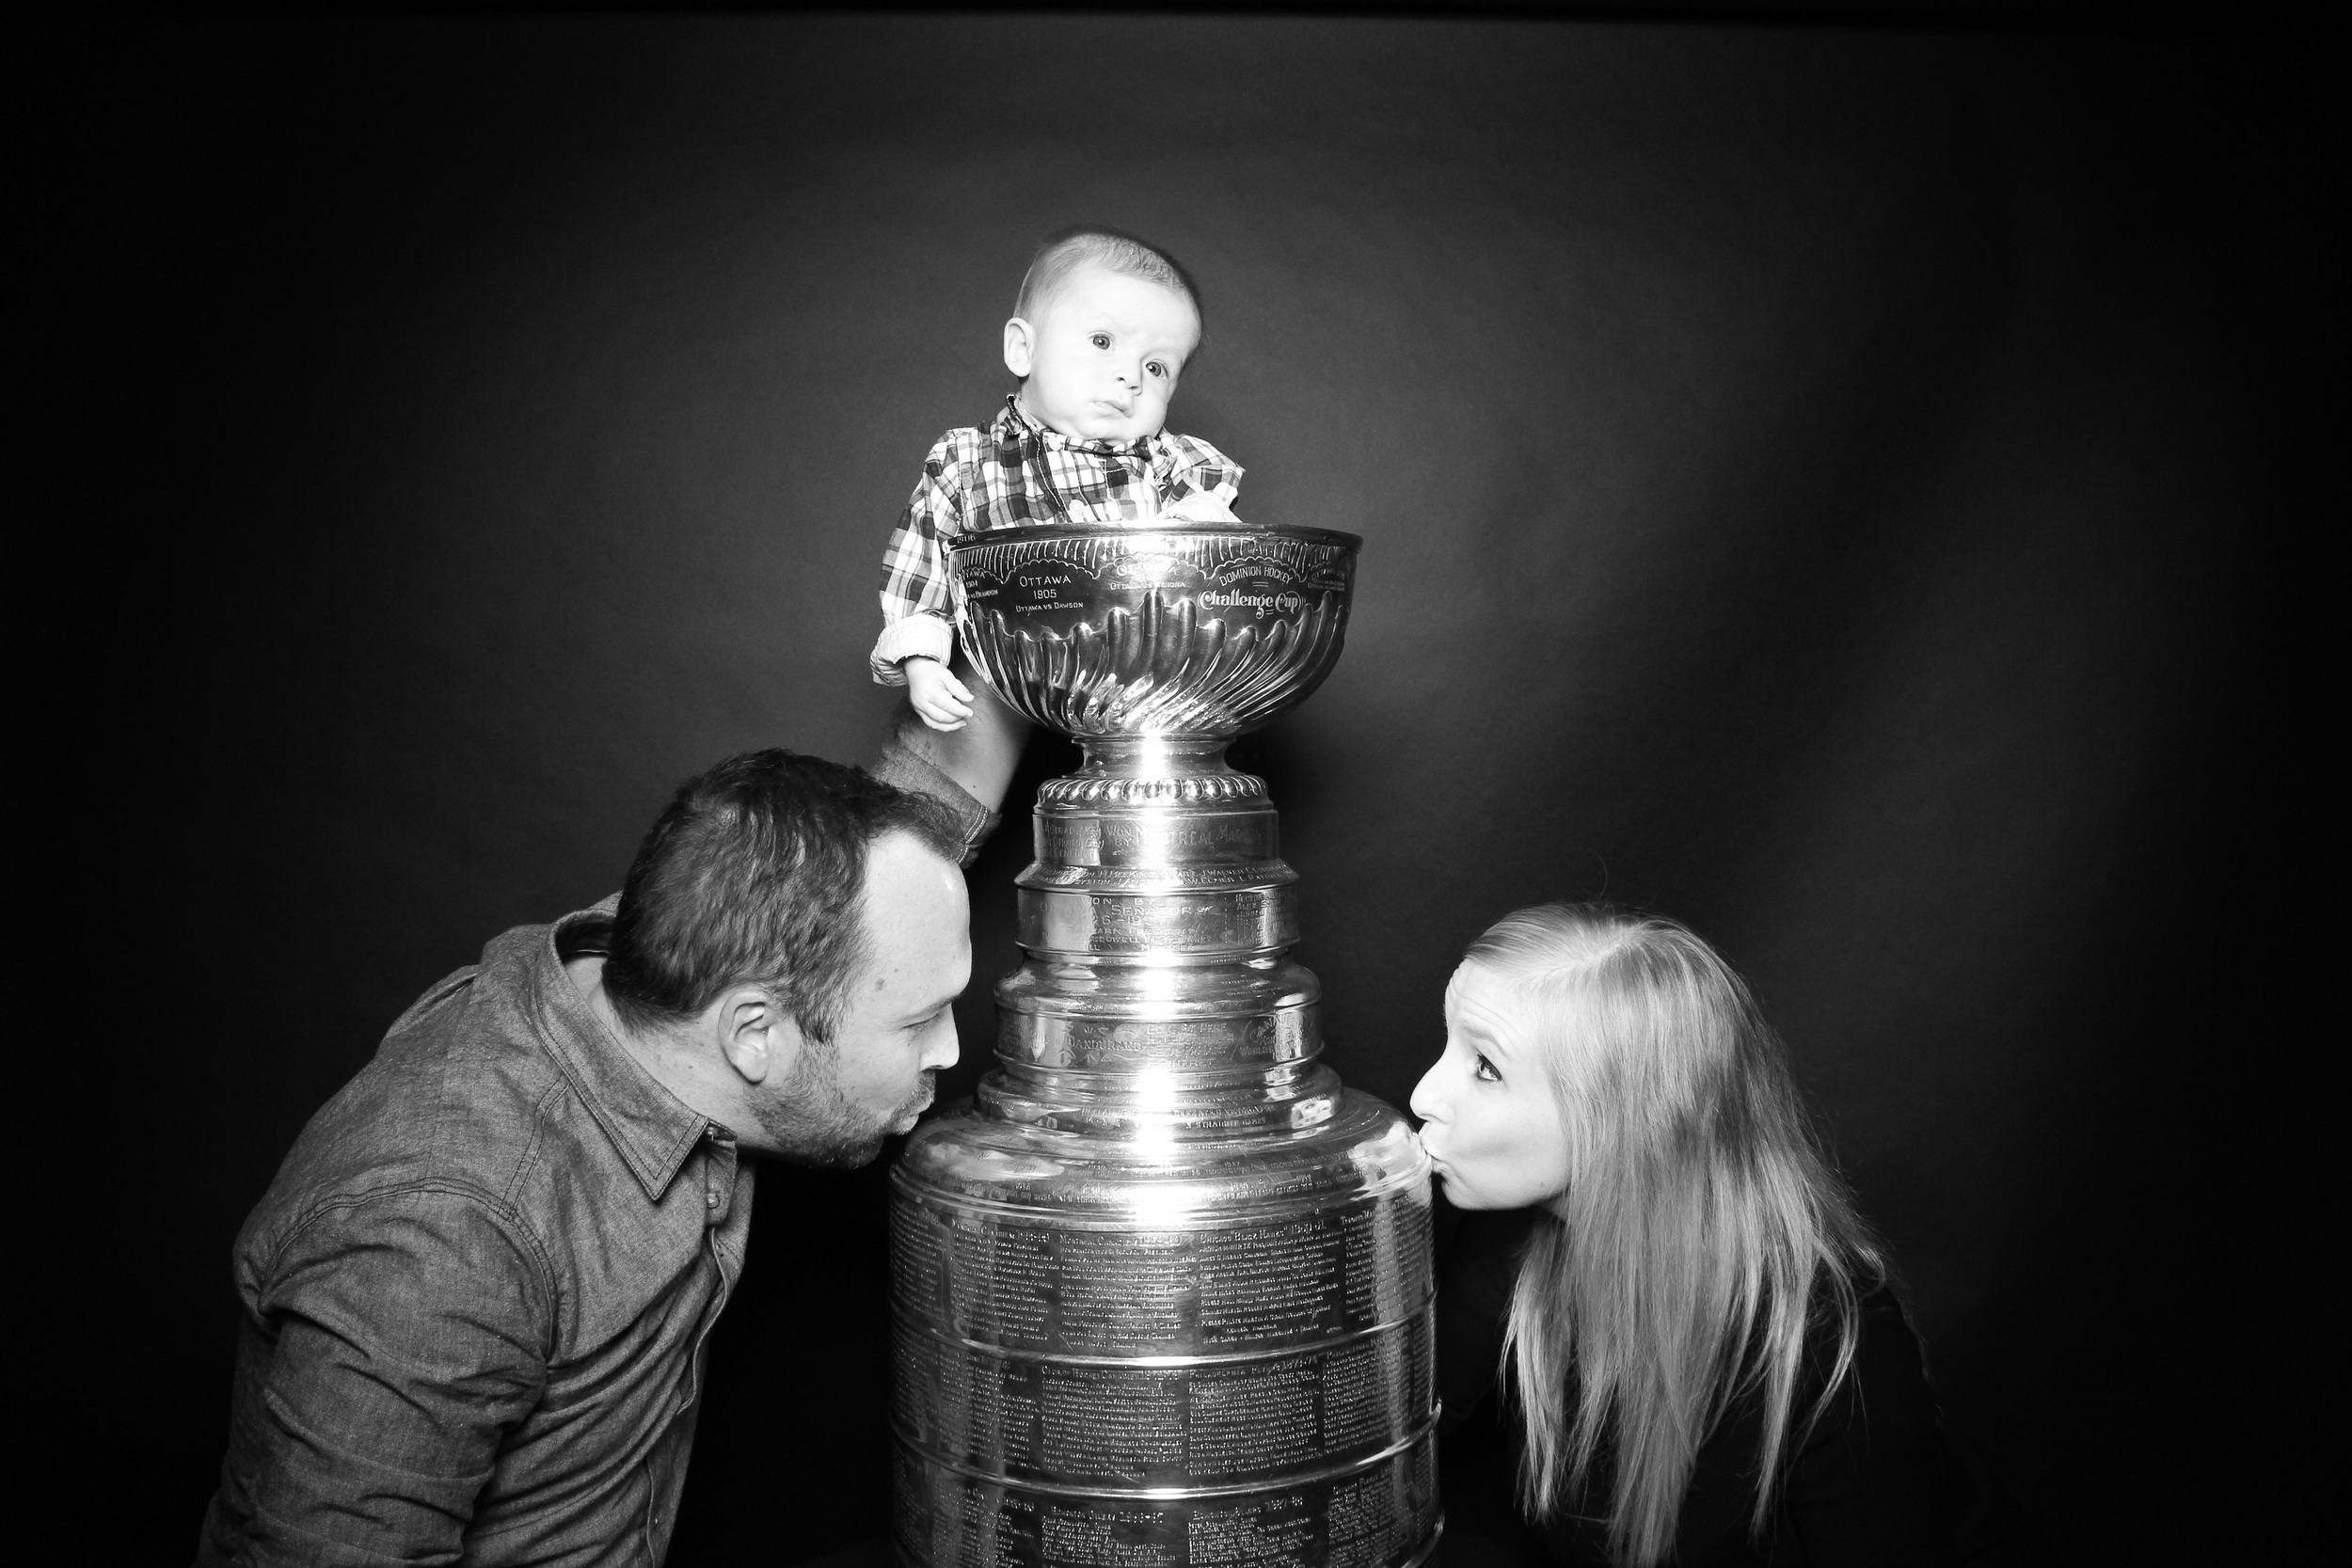 Stanley_Cup_Photo_Booth_Chicago.jpg